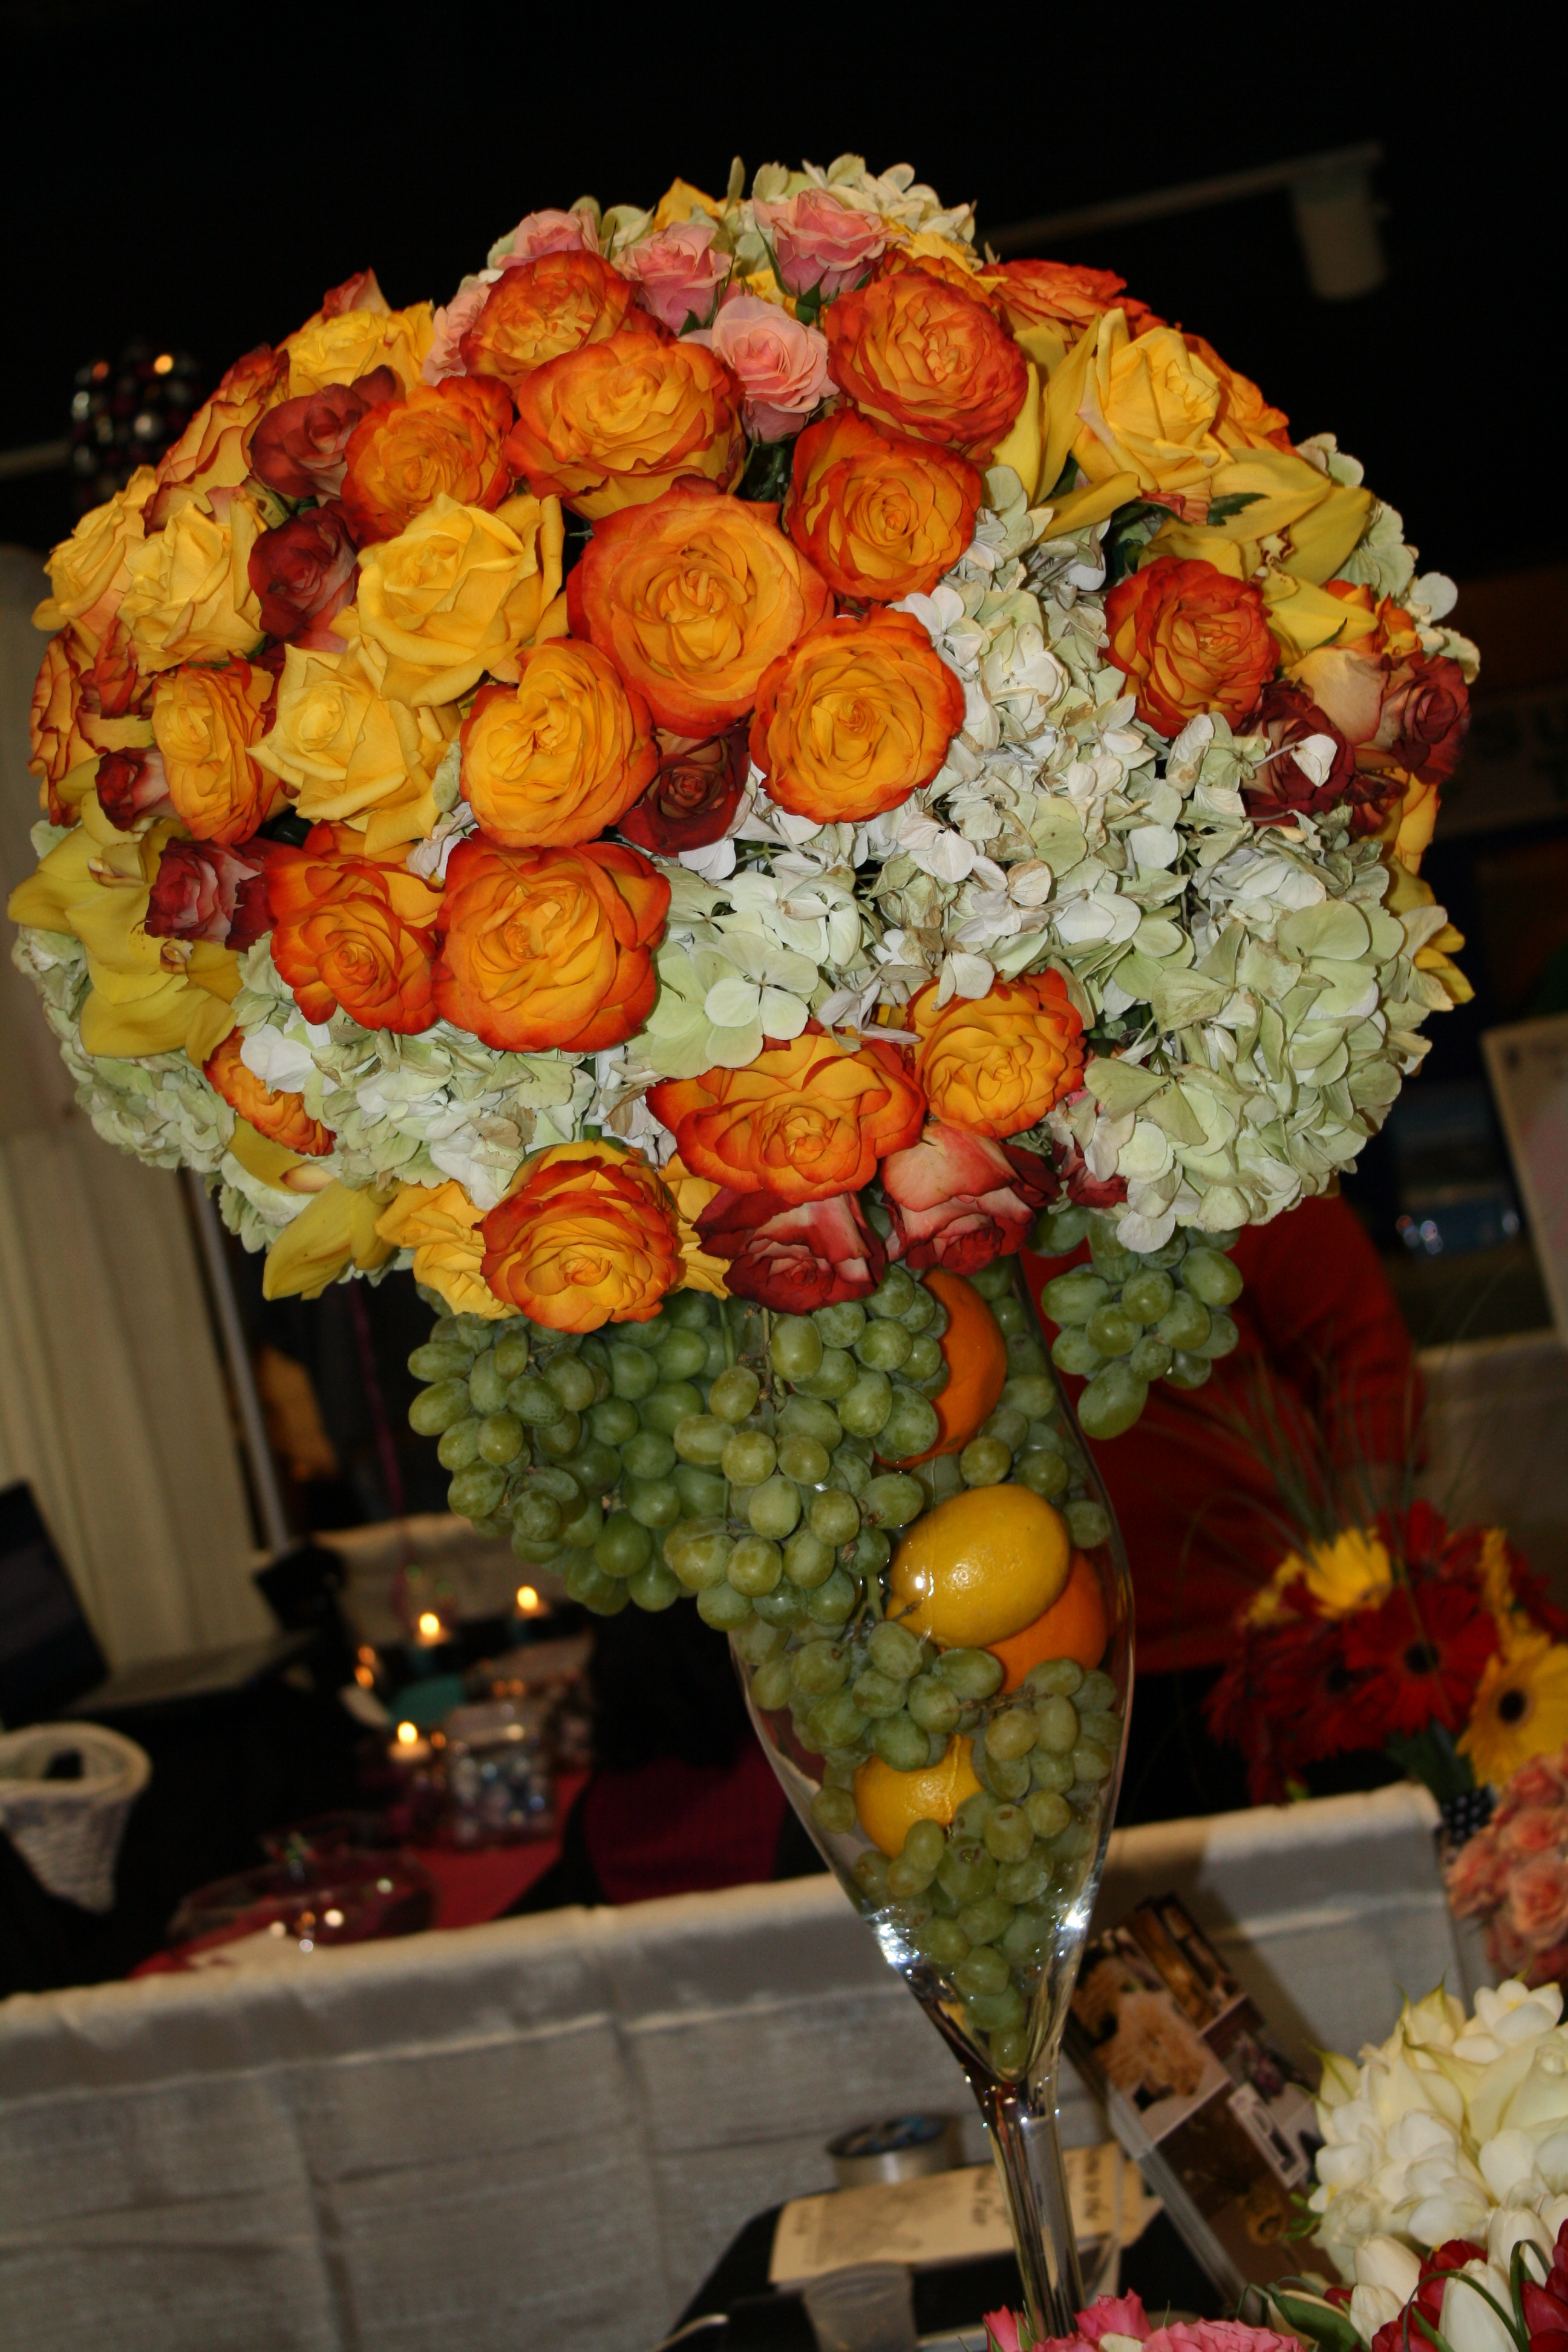 Including fruit in the buffet centerpiece is a lovely way to compliment the